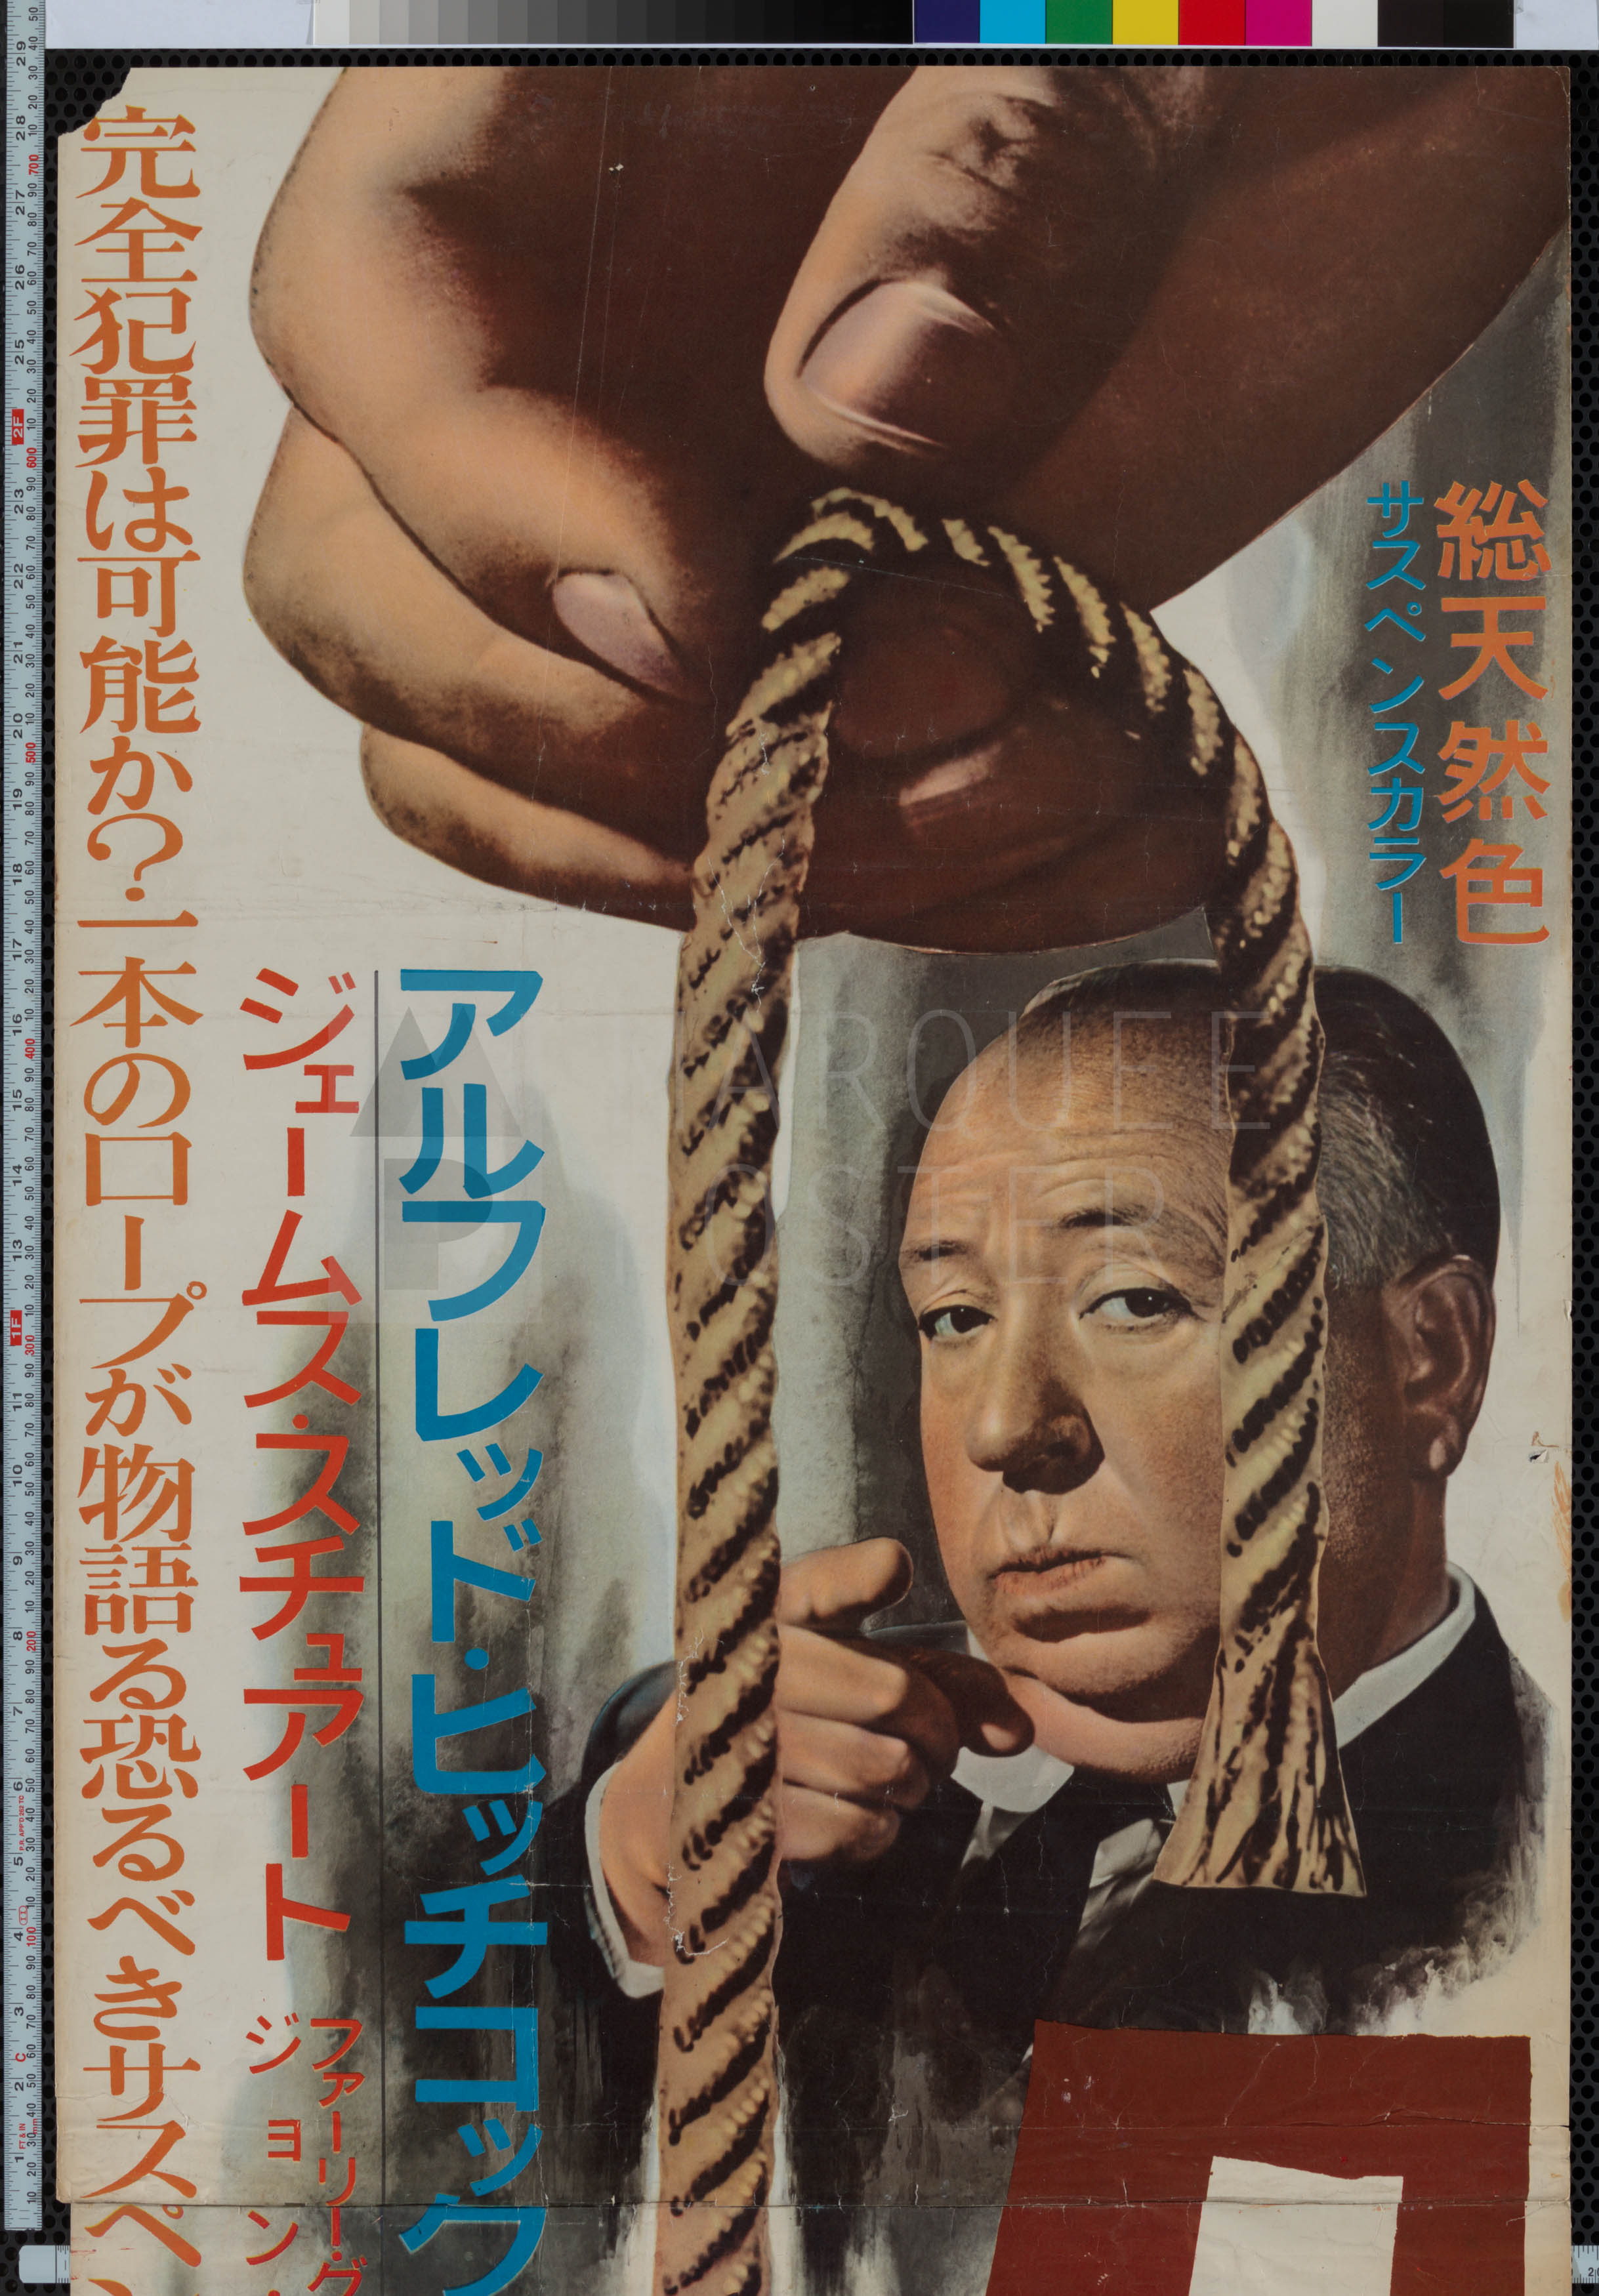 59-rope-japanese-stb-1962-02